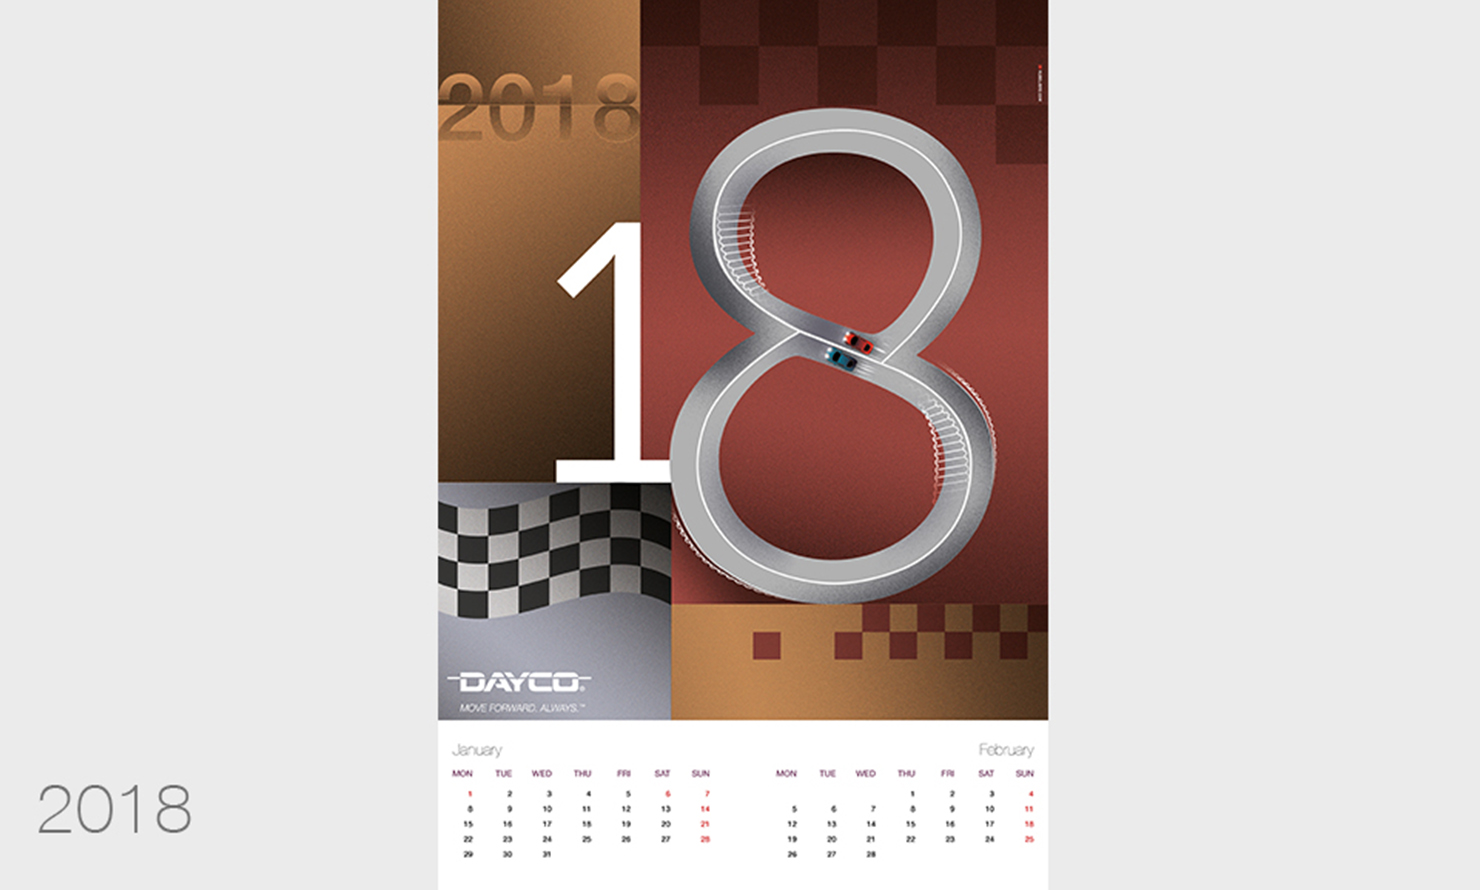 https://kubelibre.com/uploads/Slider-work-tutti-clienti/dayco-calendario-2018-1.jpg